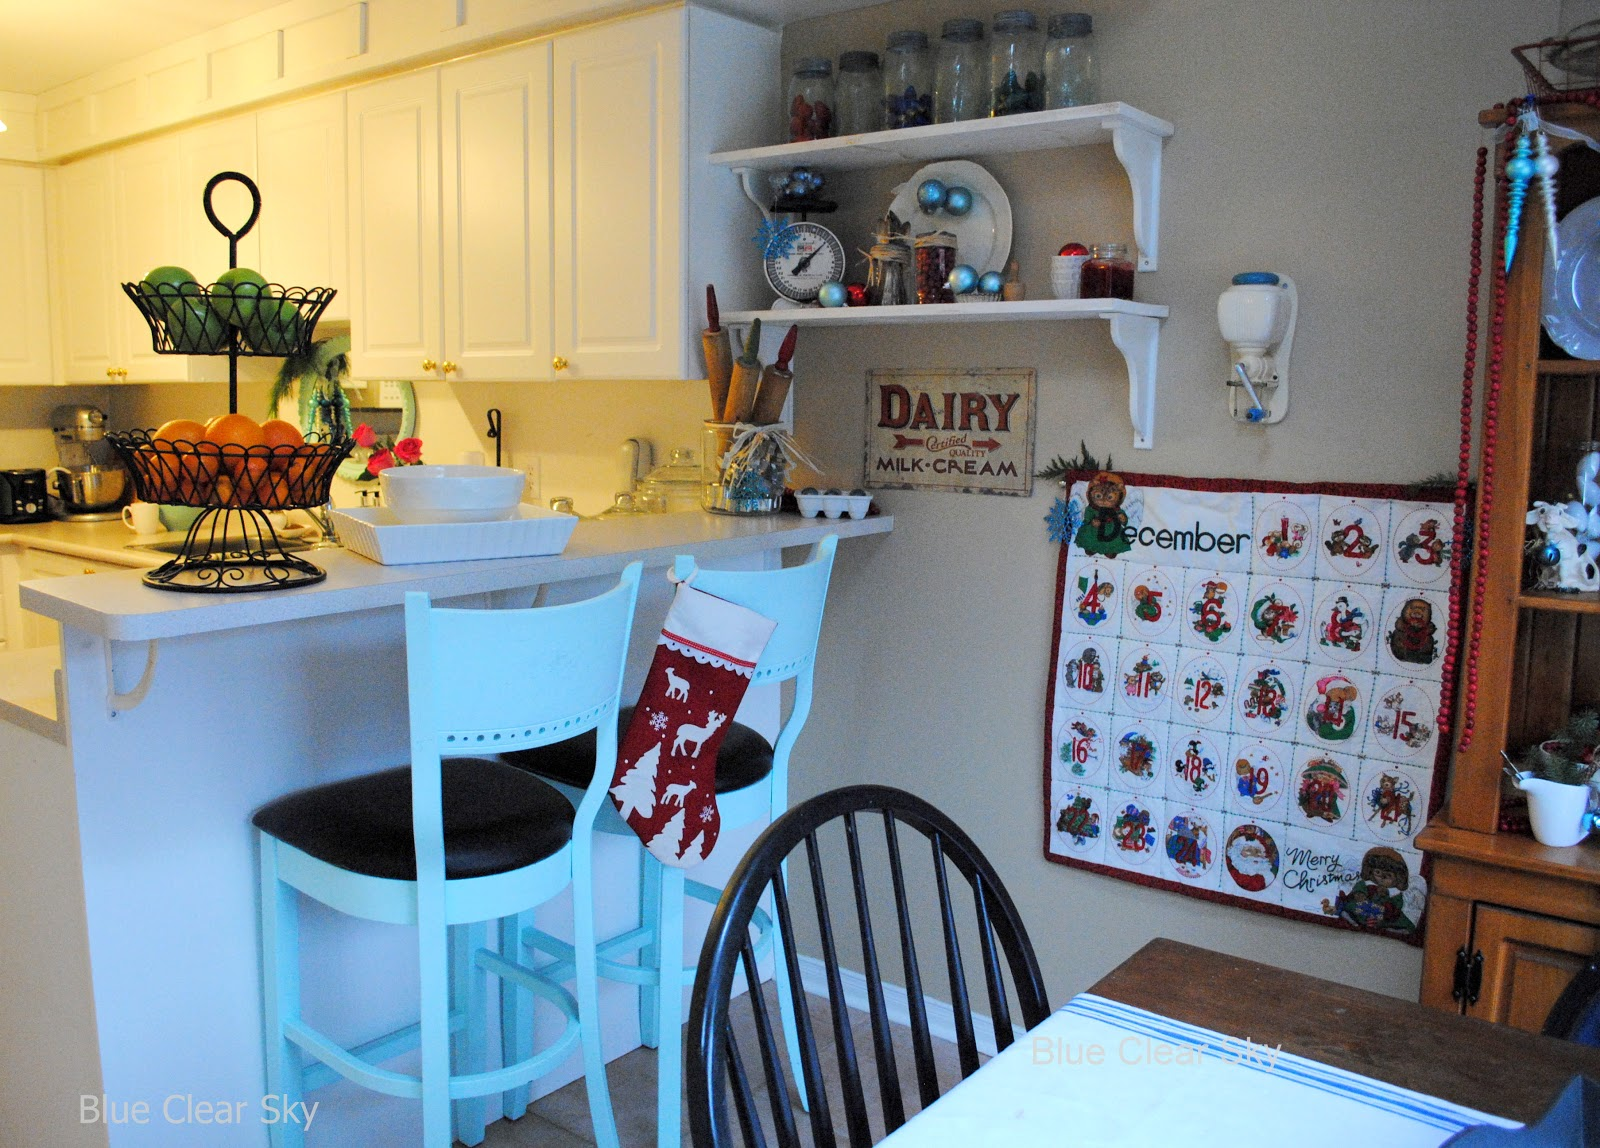 Rustic Maple: Christmas 2012 - Blue and Red Kitchen